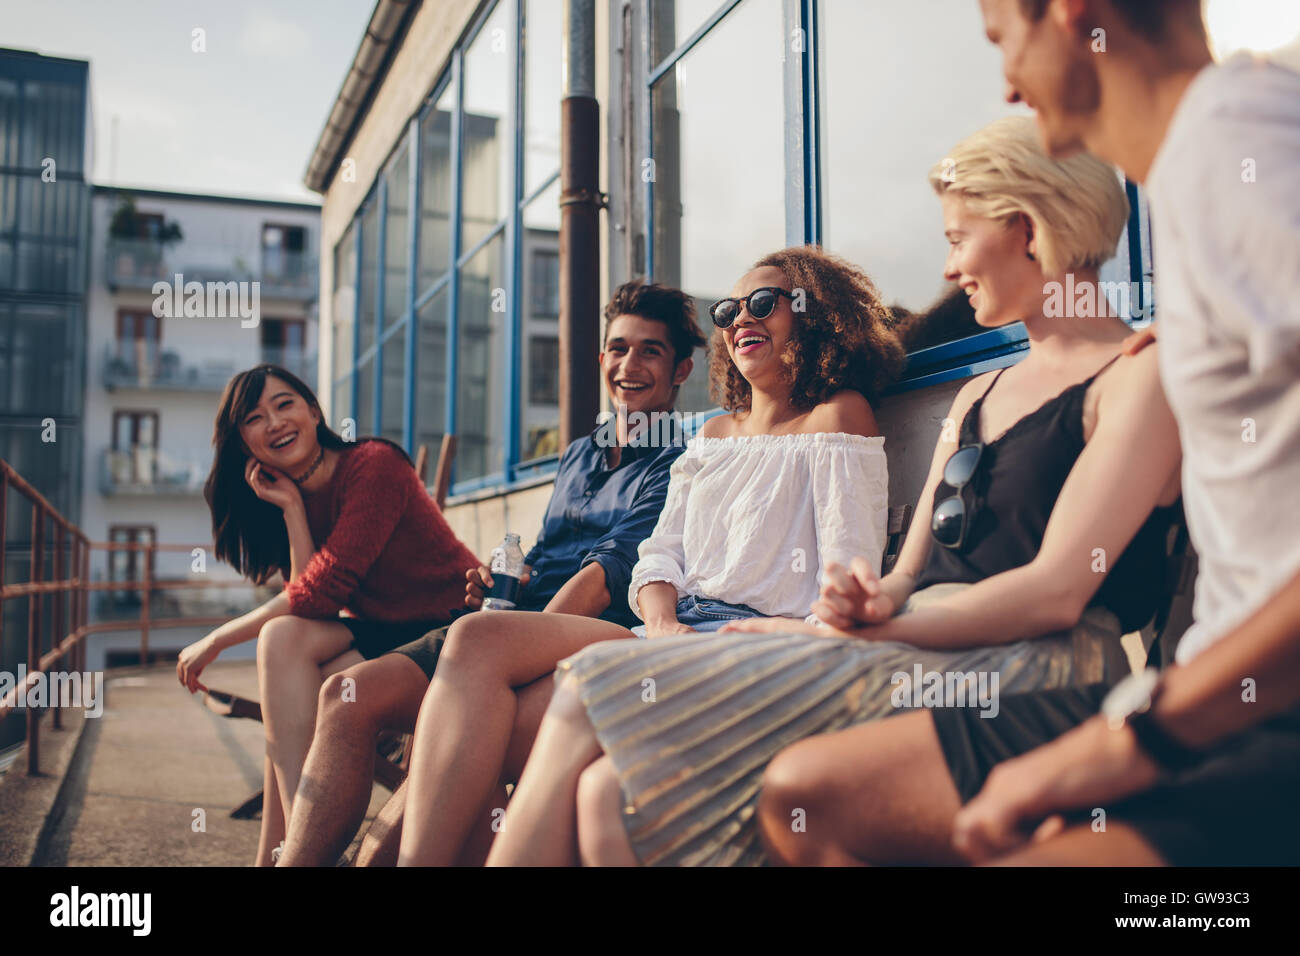 Multiracial group of friends sitting in balcony and smiling. Young people relaxing outdoors in terrace. - Stock Image